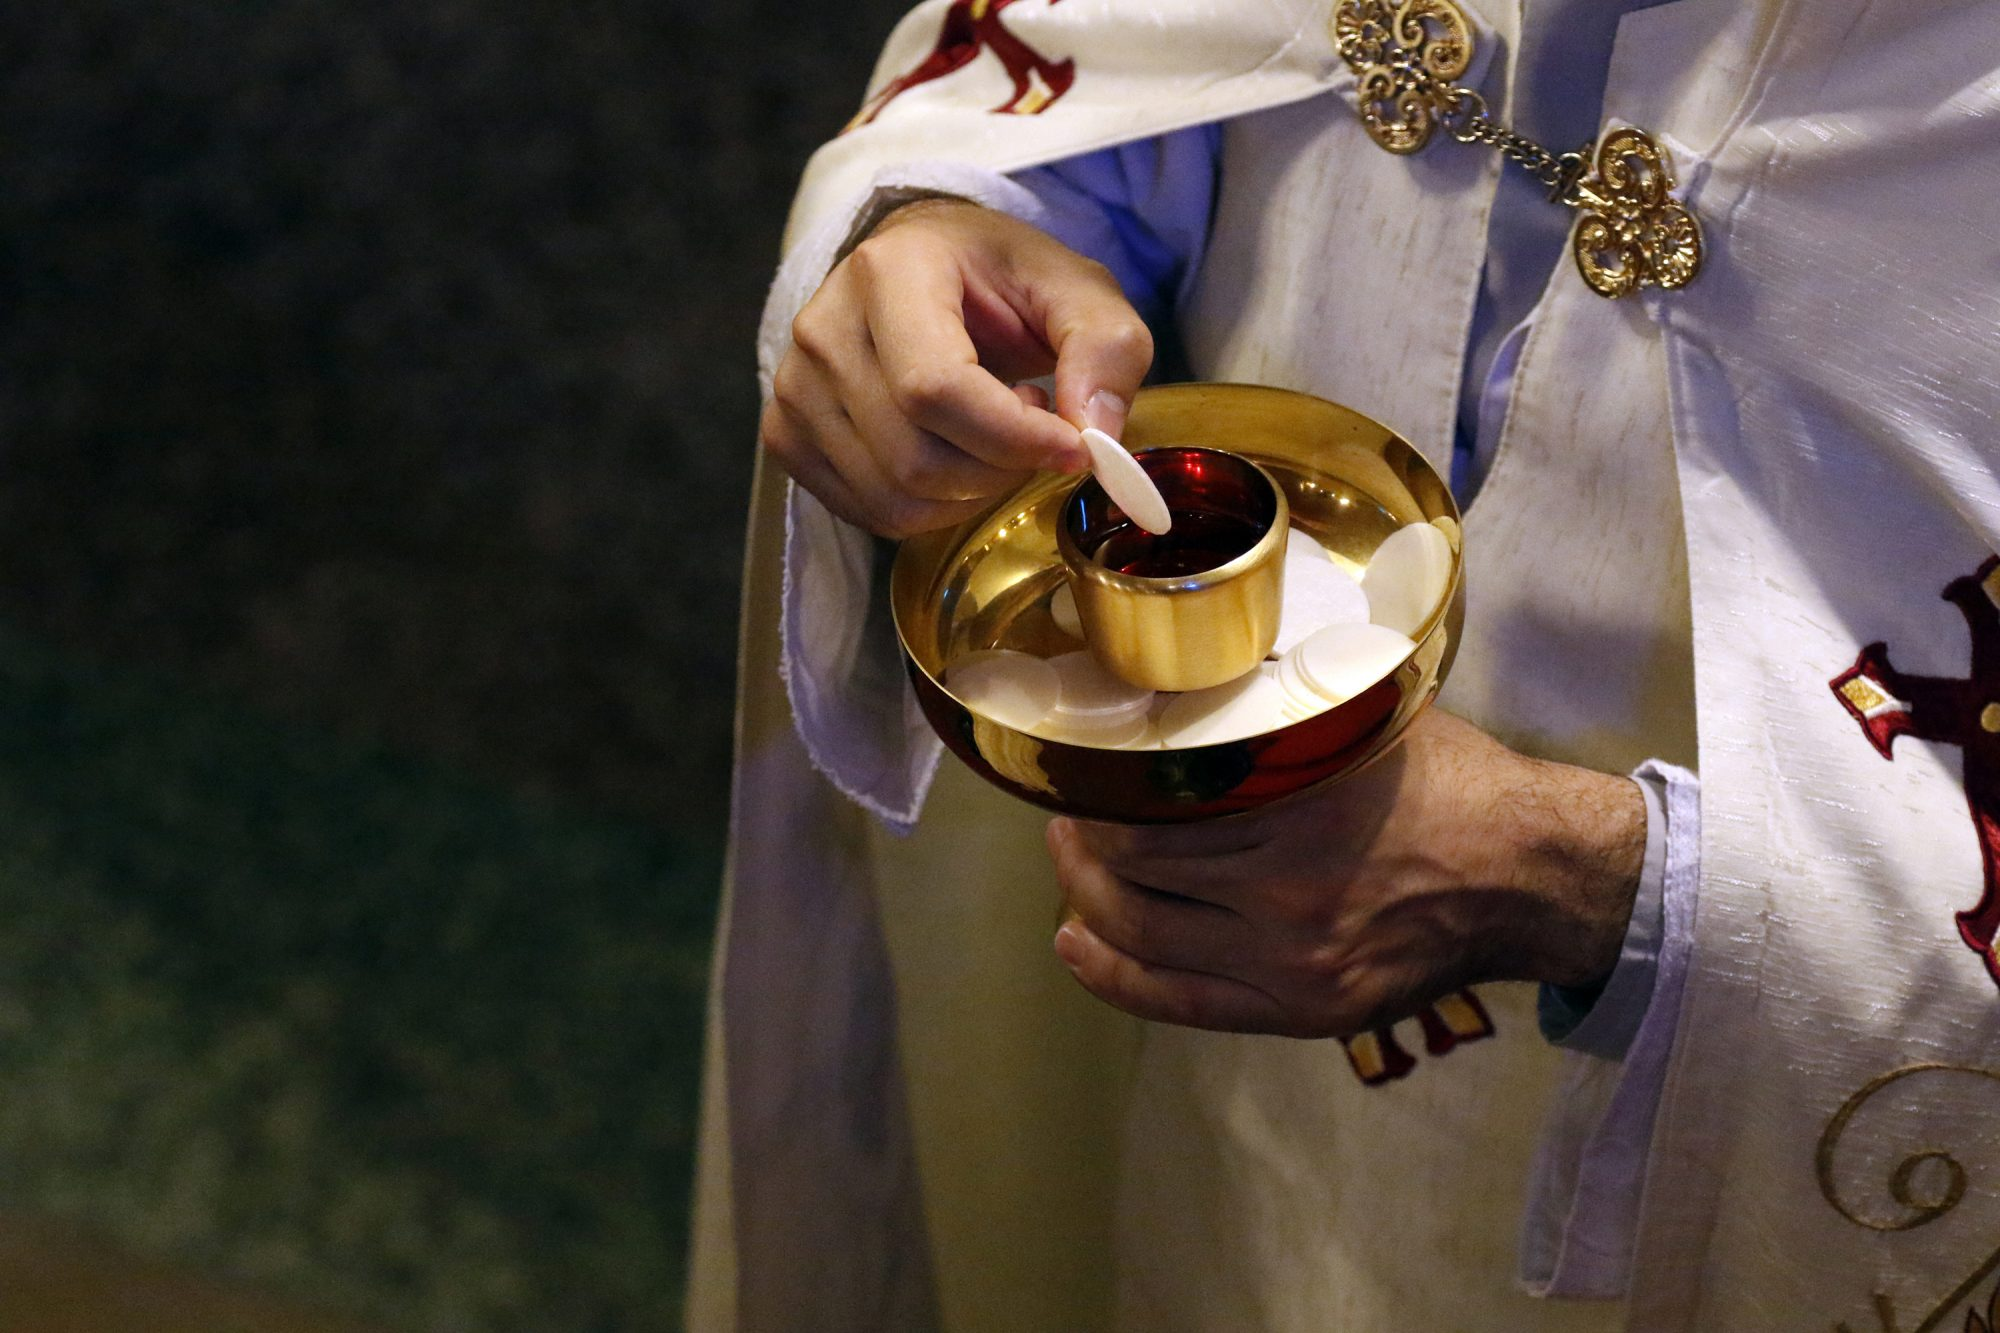 Can i receive communion if i am divorced